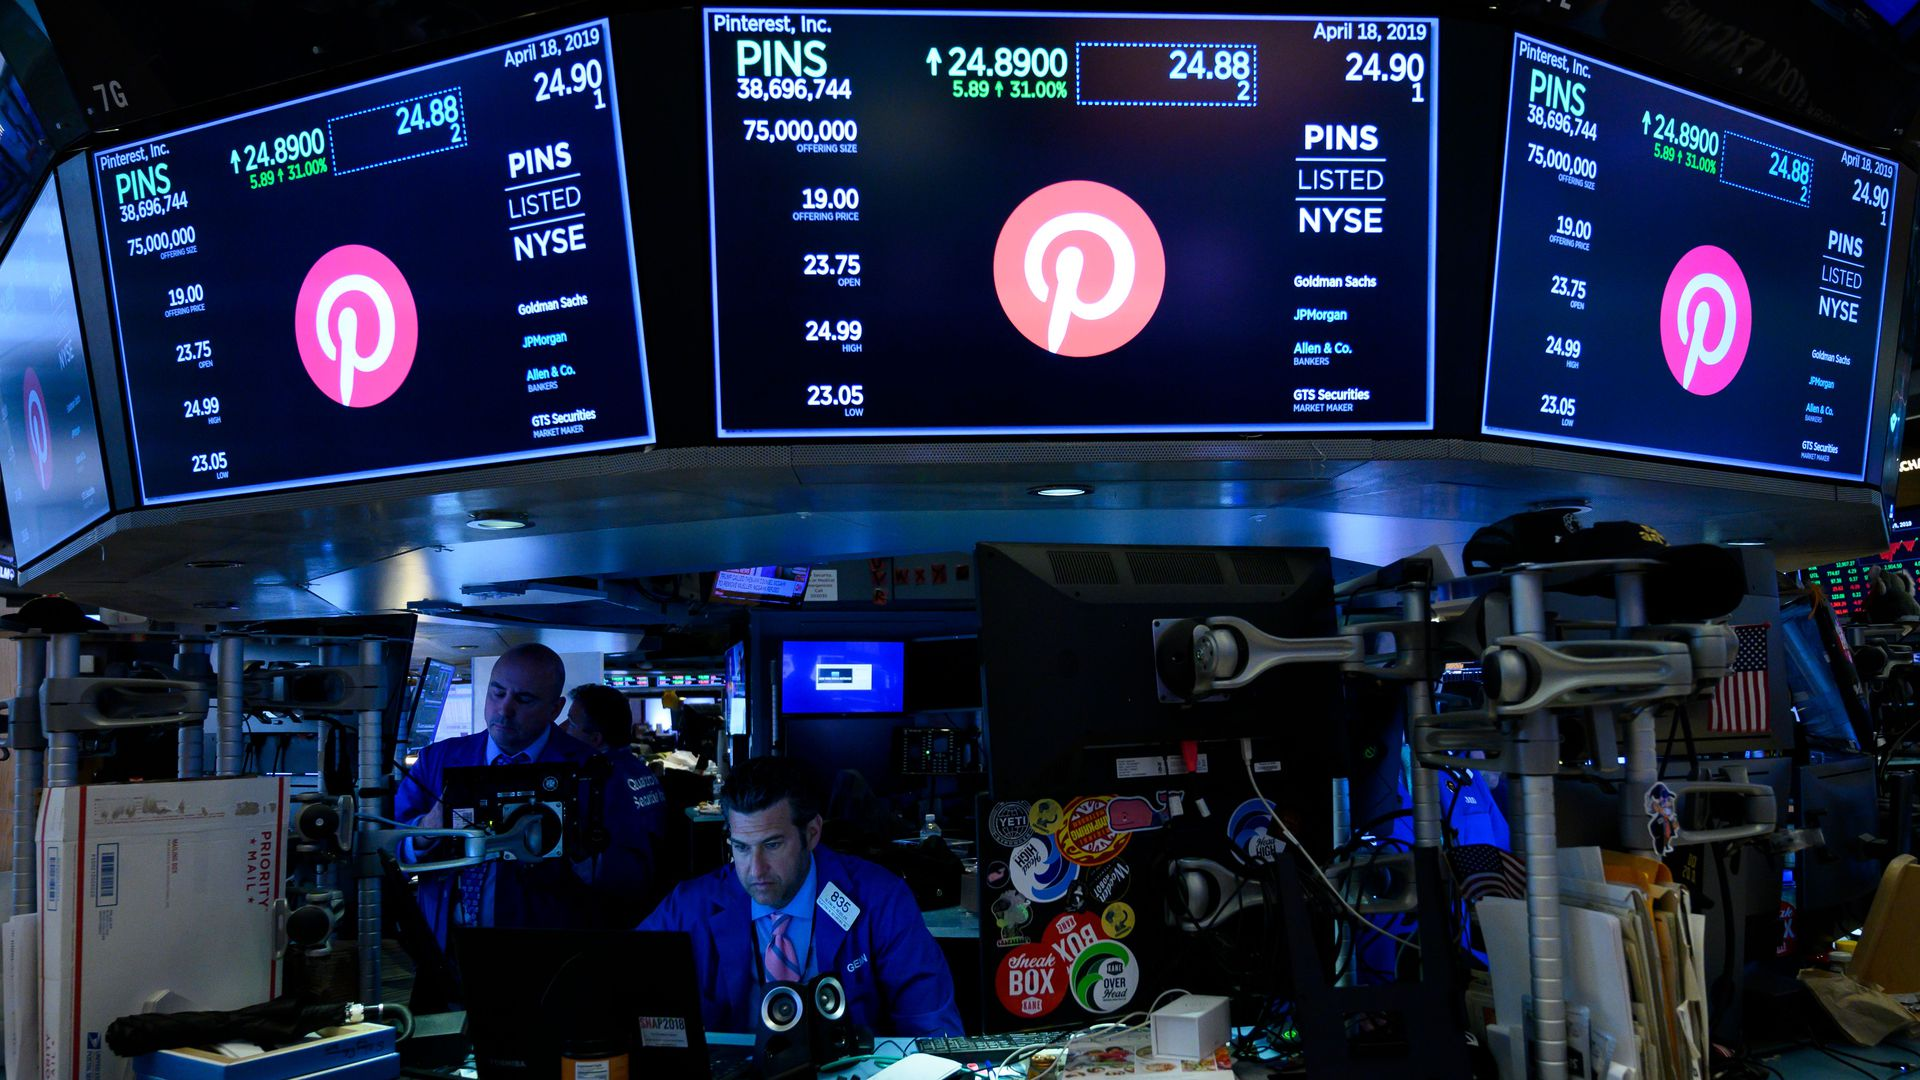 Photo of NYSE stock exchange during Pinterest IPO.